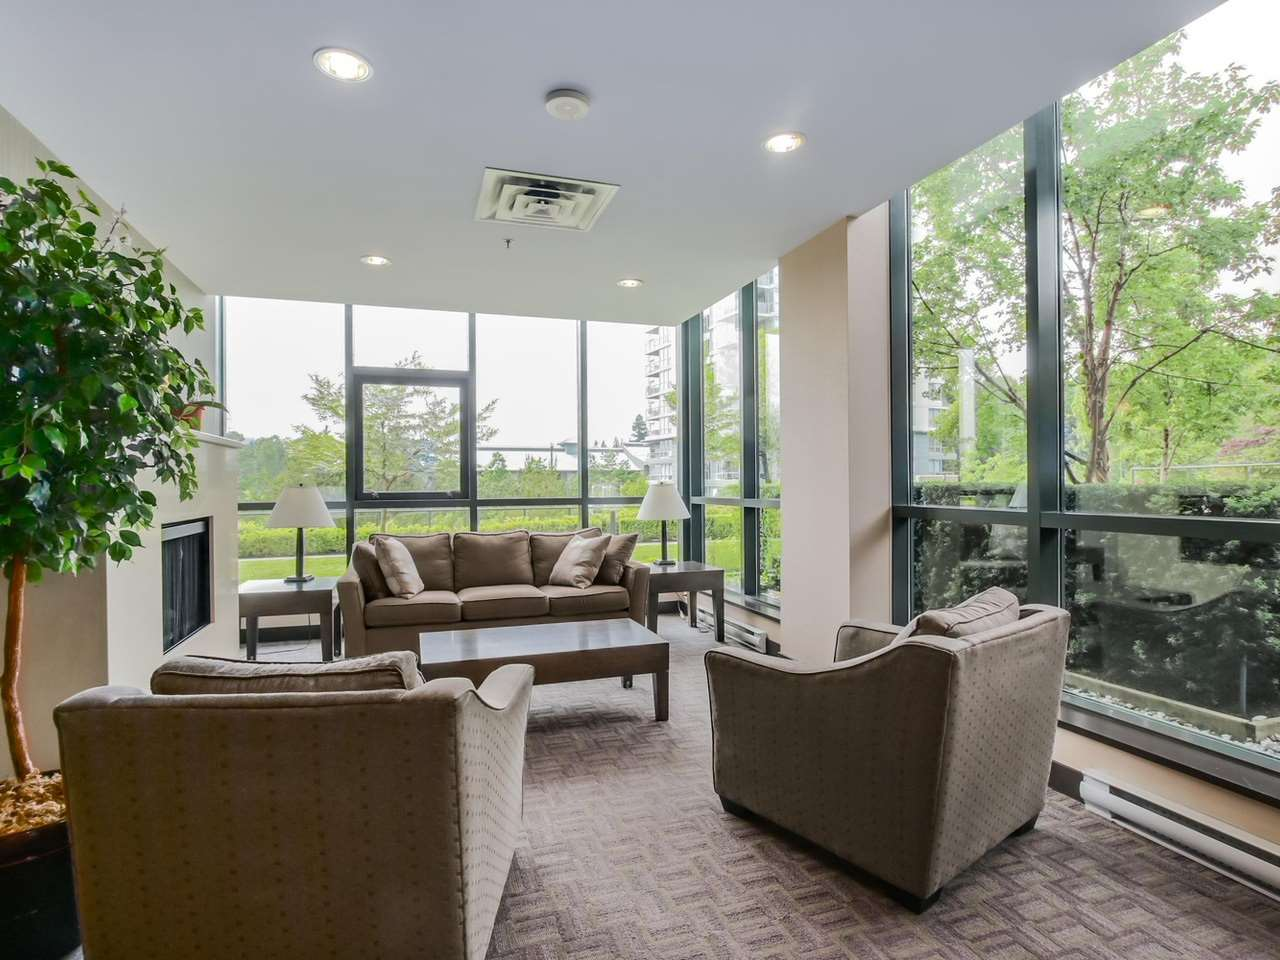 Photo 2: 203 288 UNGLESS WAY in Port Moody: Port Moody Centre Condo for sale : MLS(r) # R2071333